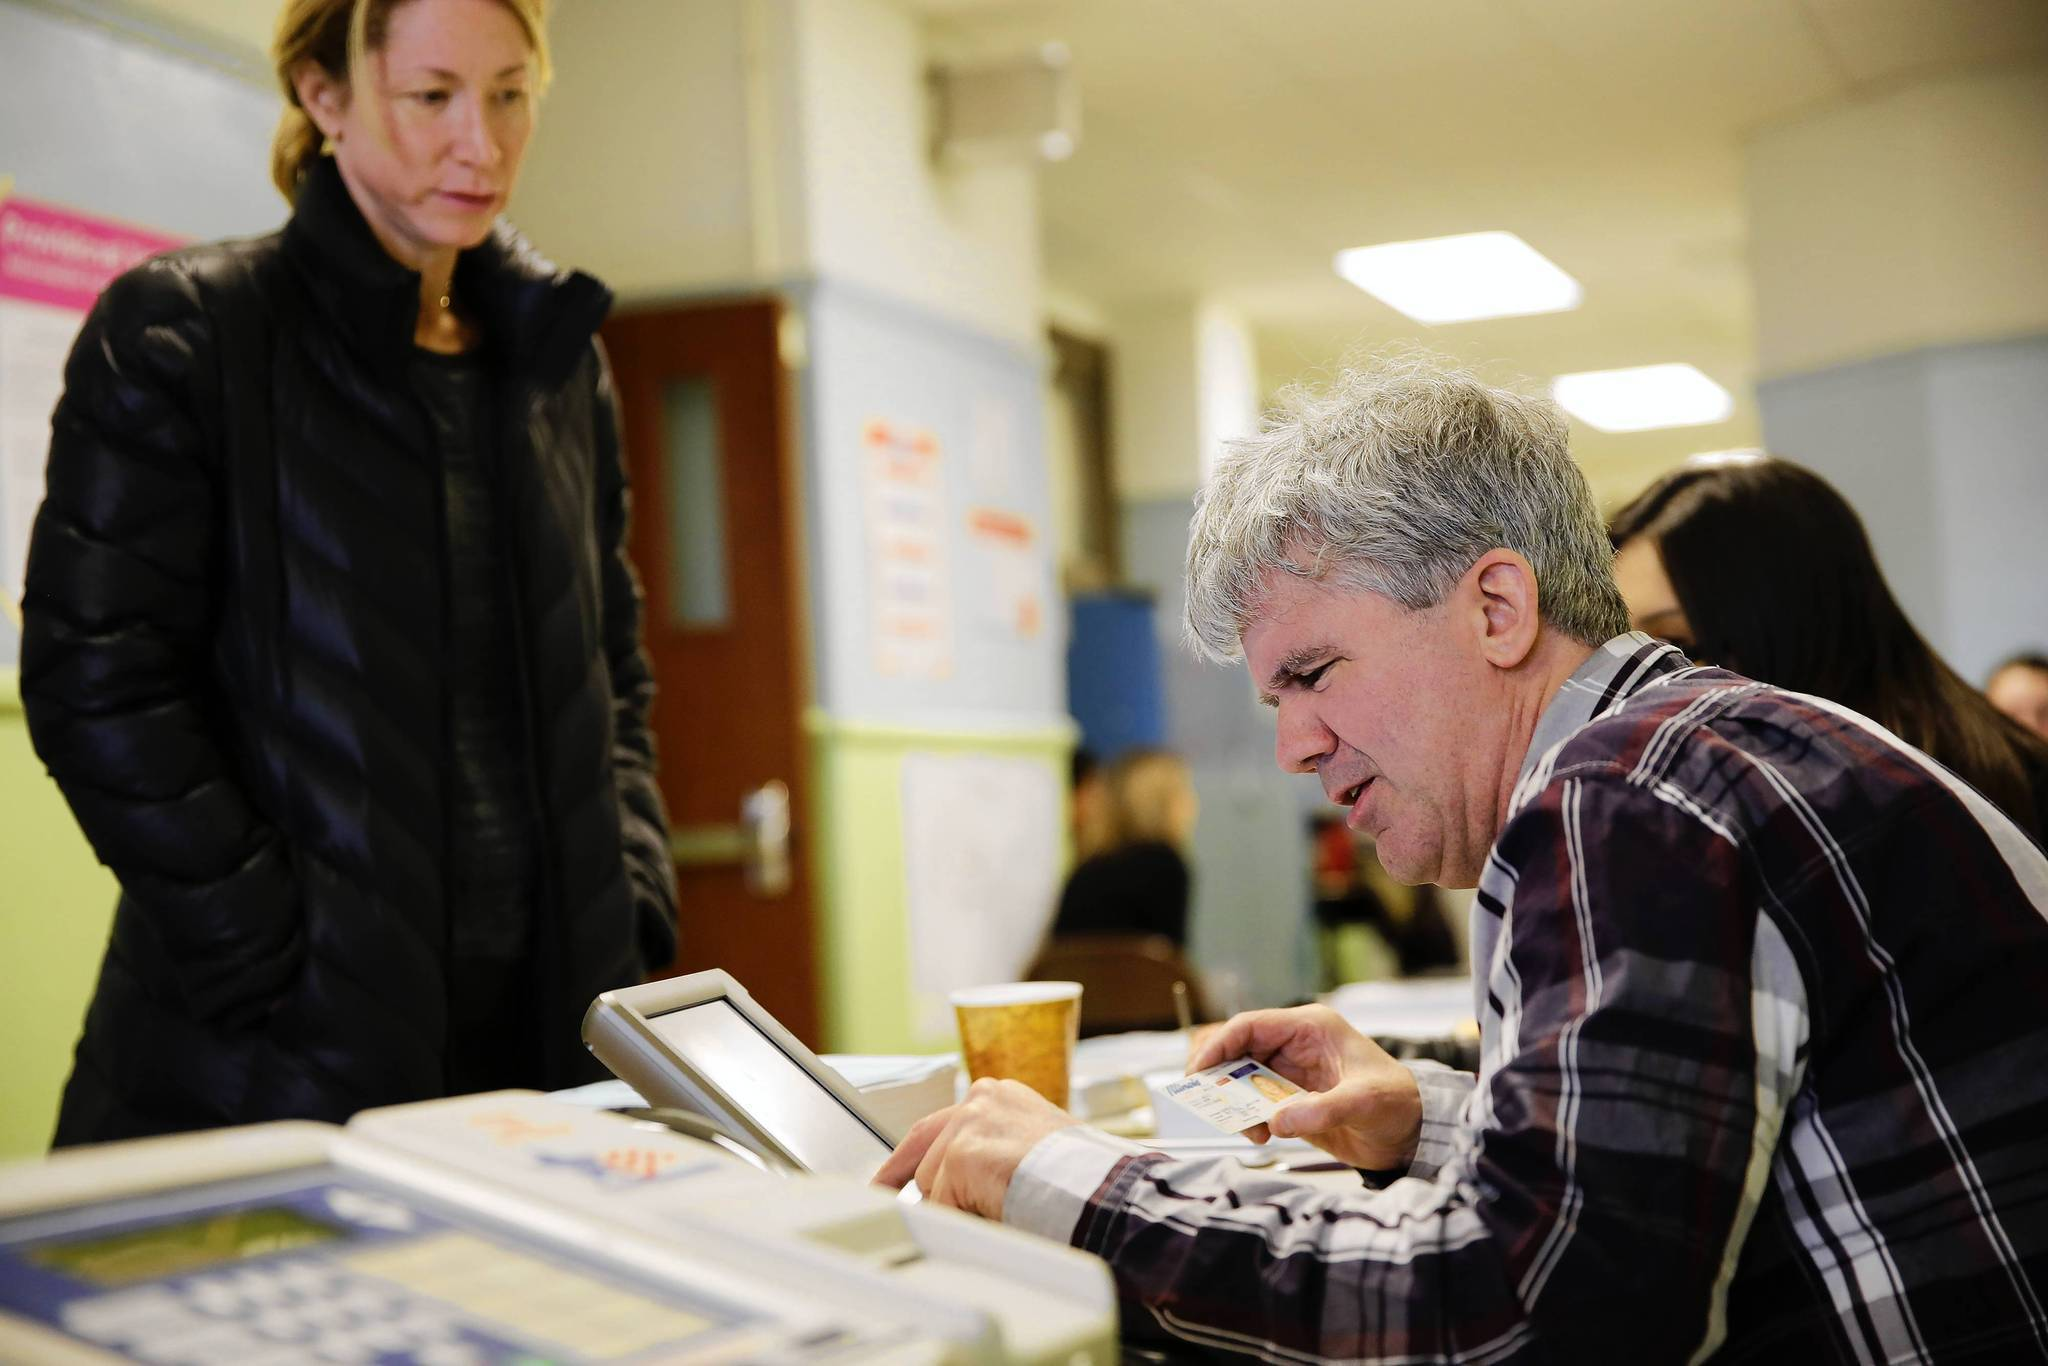 Election judge Daniel O'Donoghue looks over information from voter Stacy Kelly on primary election day in Chicago in March. This fall, voters will be able to register to vote on the same day they cast their ballots.